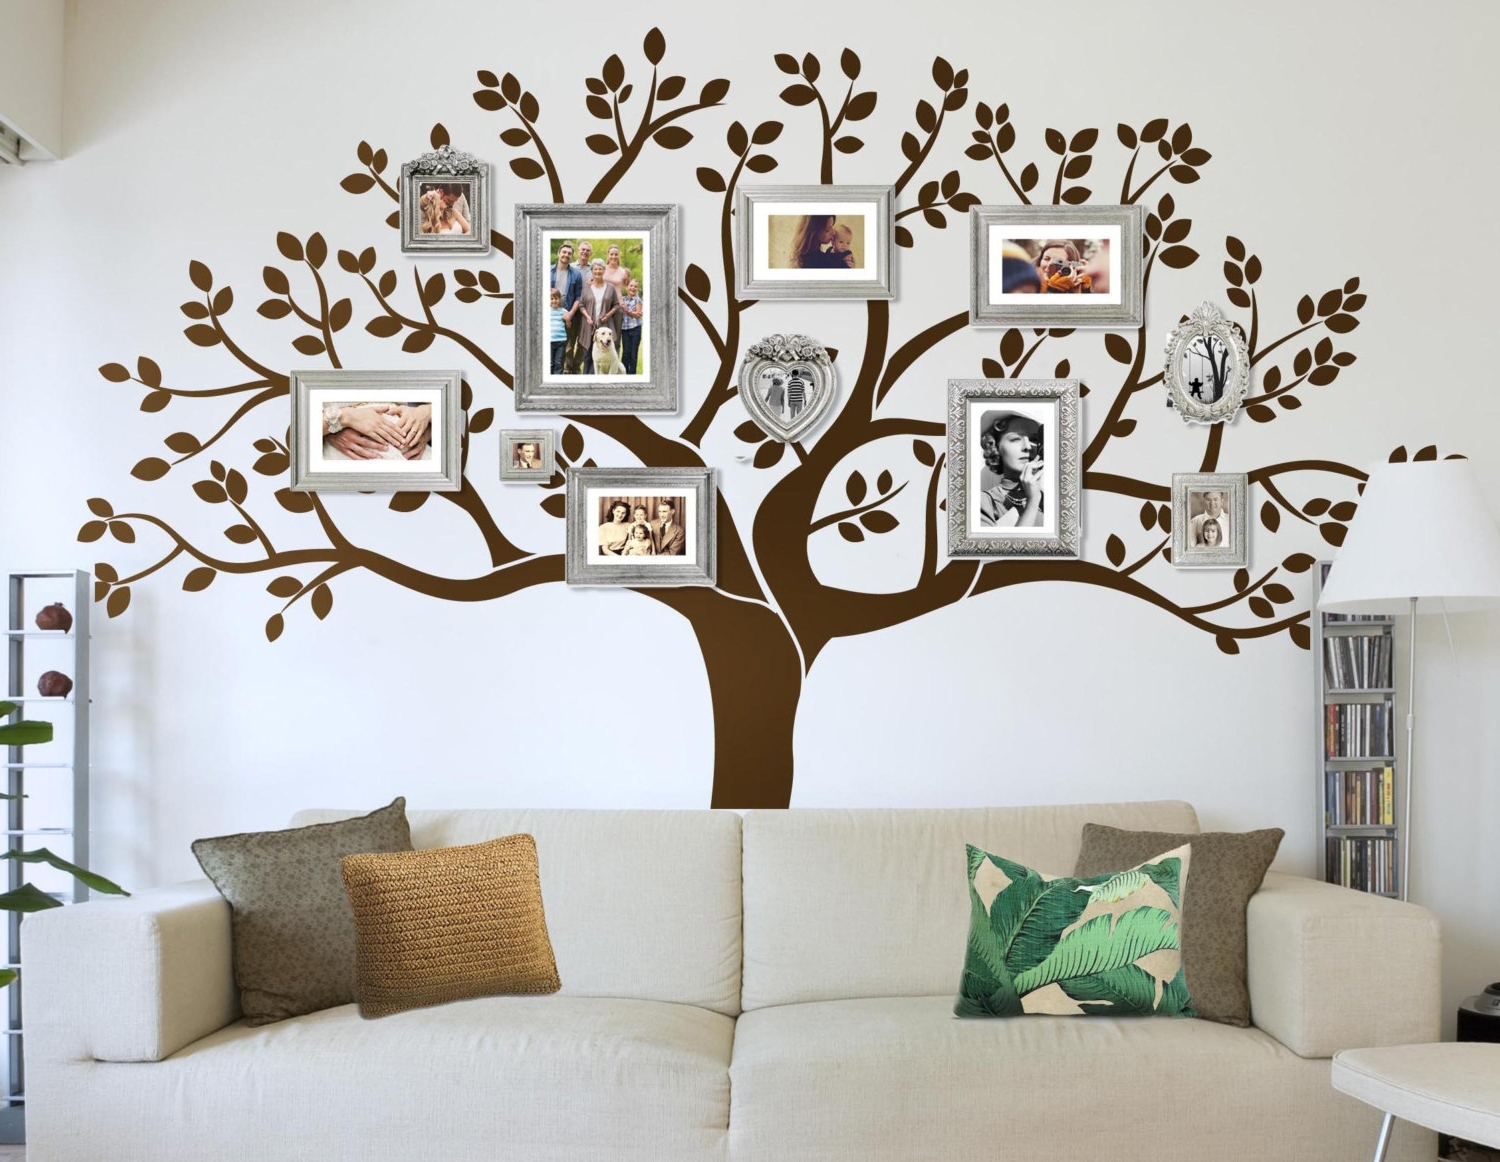 Bed Bath And Beyond 3D Wall Art With Best And Newest Stick On Wall Decor Decal • Walls Decor (View 5 of 15)